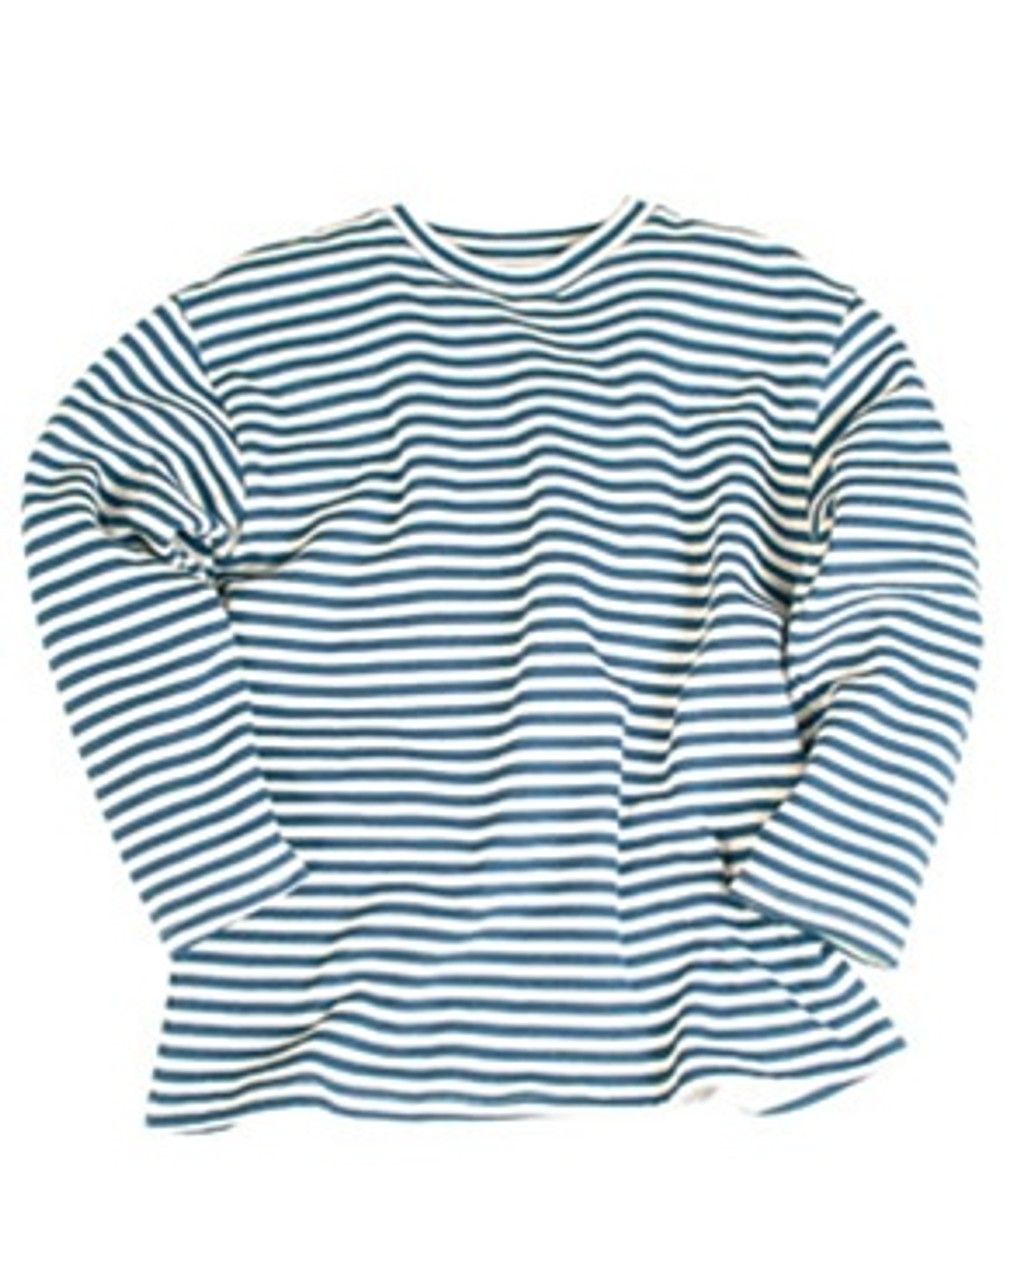 Russian Striped Winter Sweater from Hessen Antique